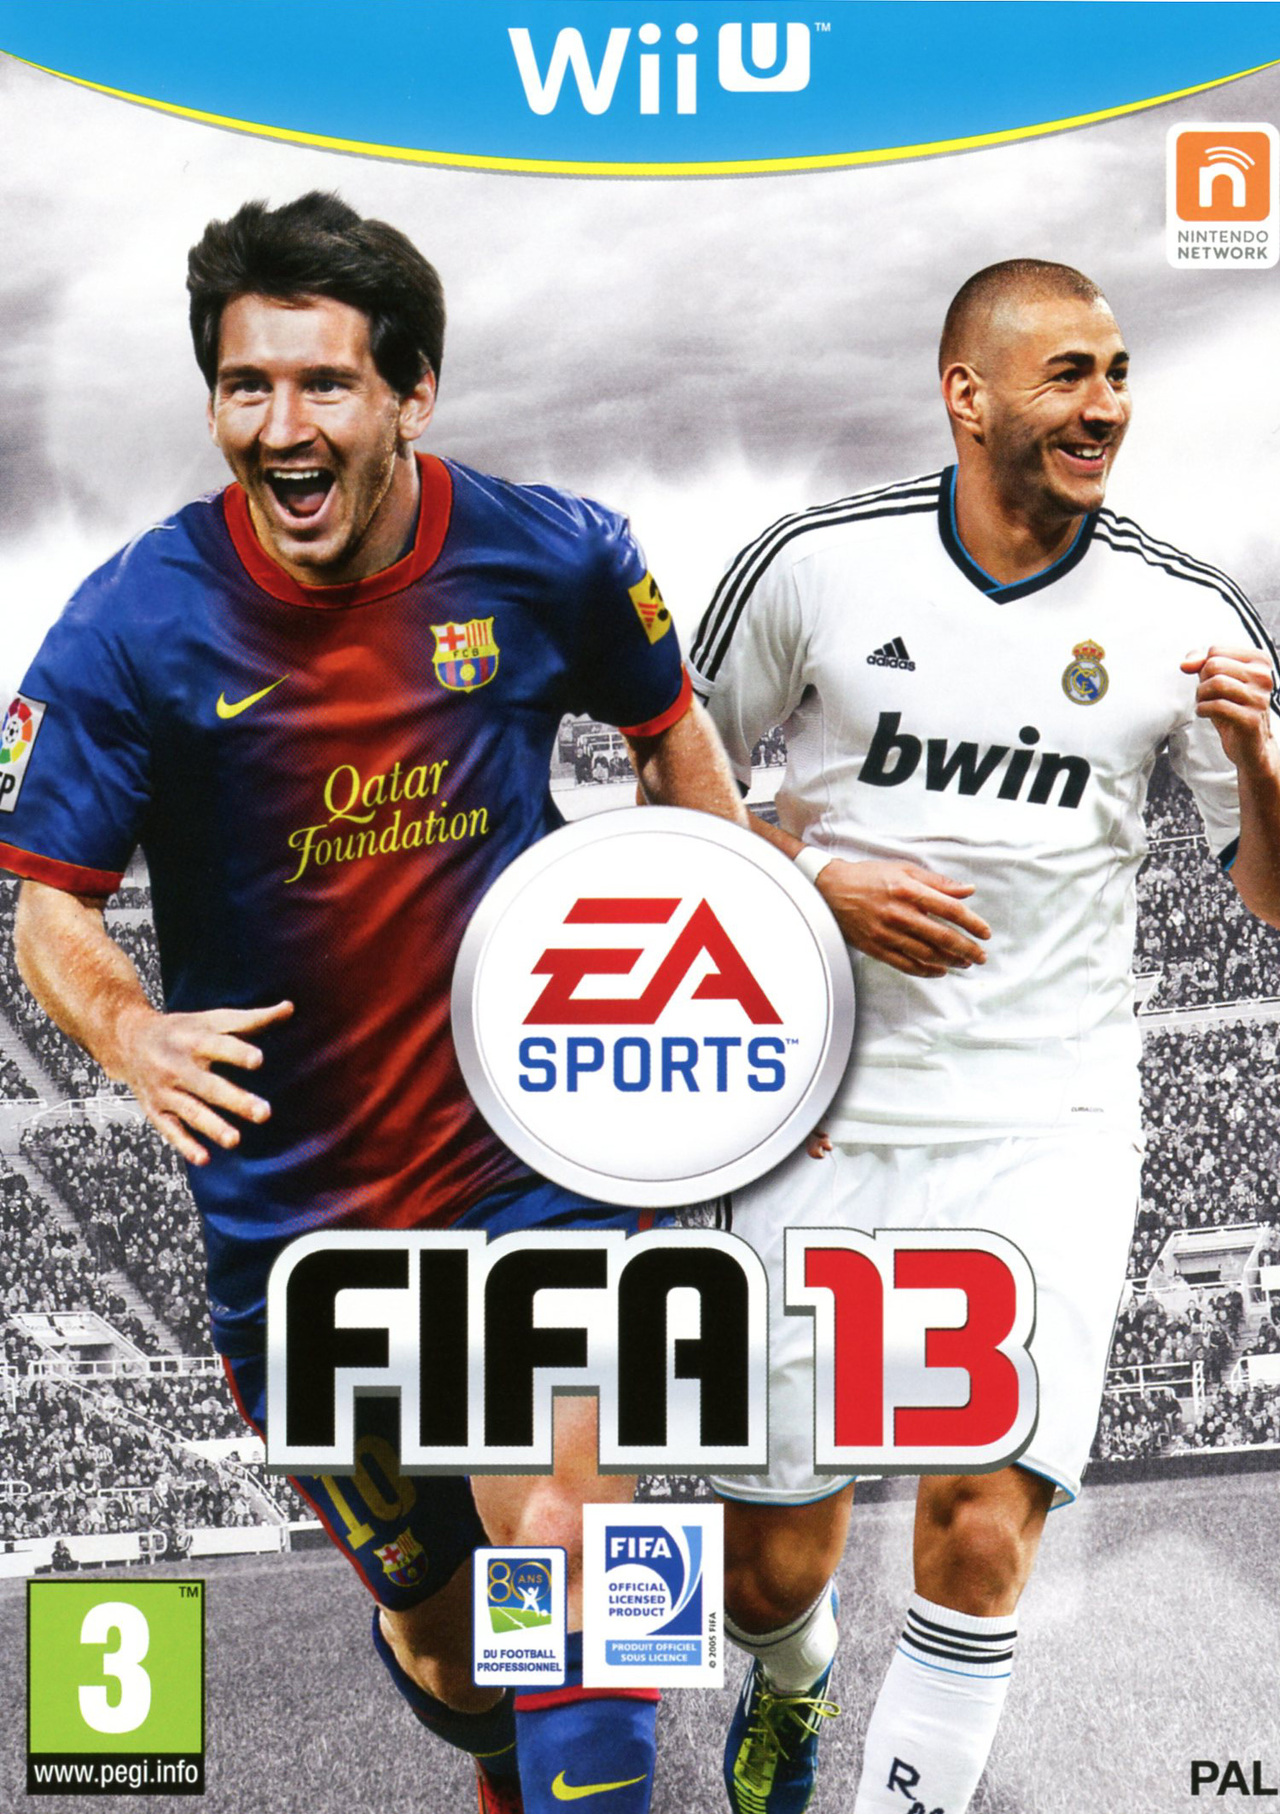 fifa 13 sur wii u. Black Bedroom Furniture Sets. Home Design Ideas